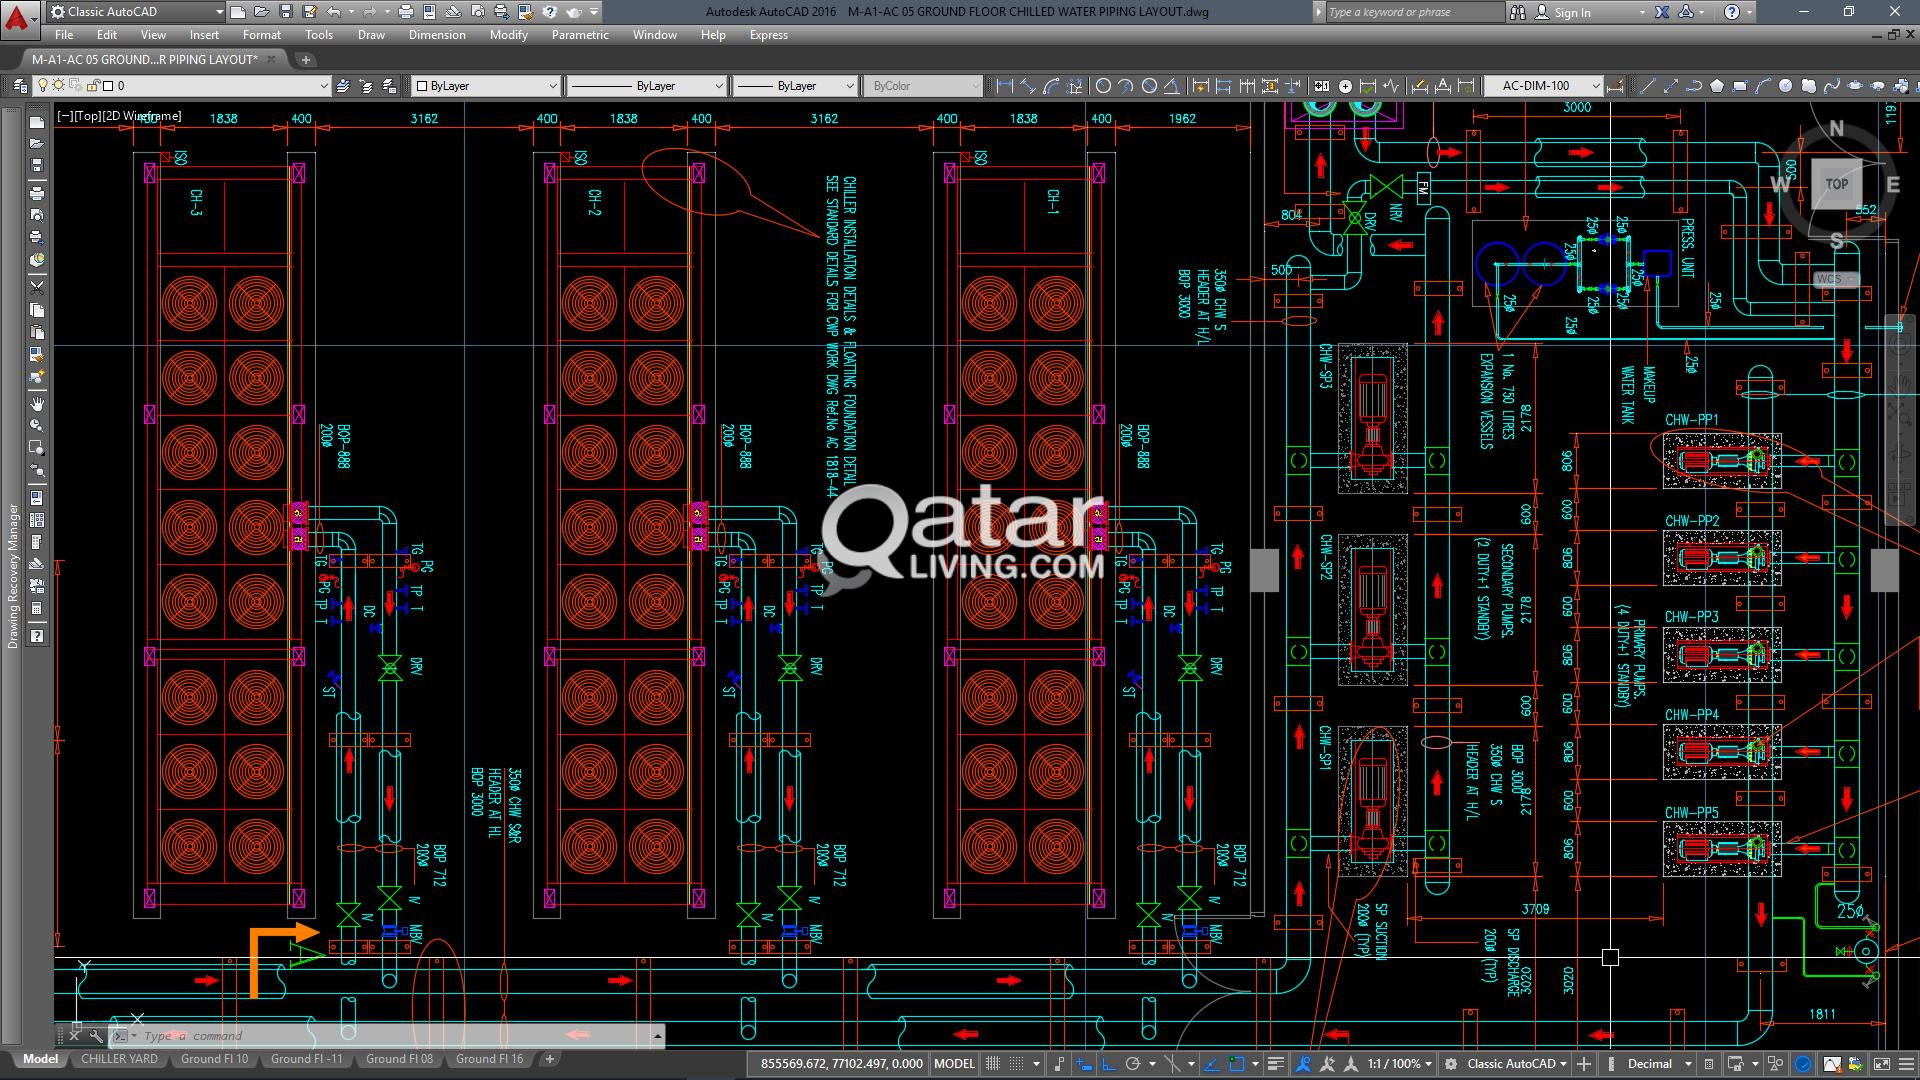 Cad Drawings Designing Mep Shop Mechanical Piping Layout Pictures Electrical Qatar Living